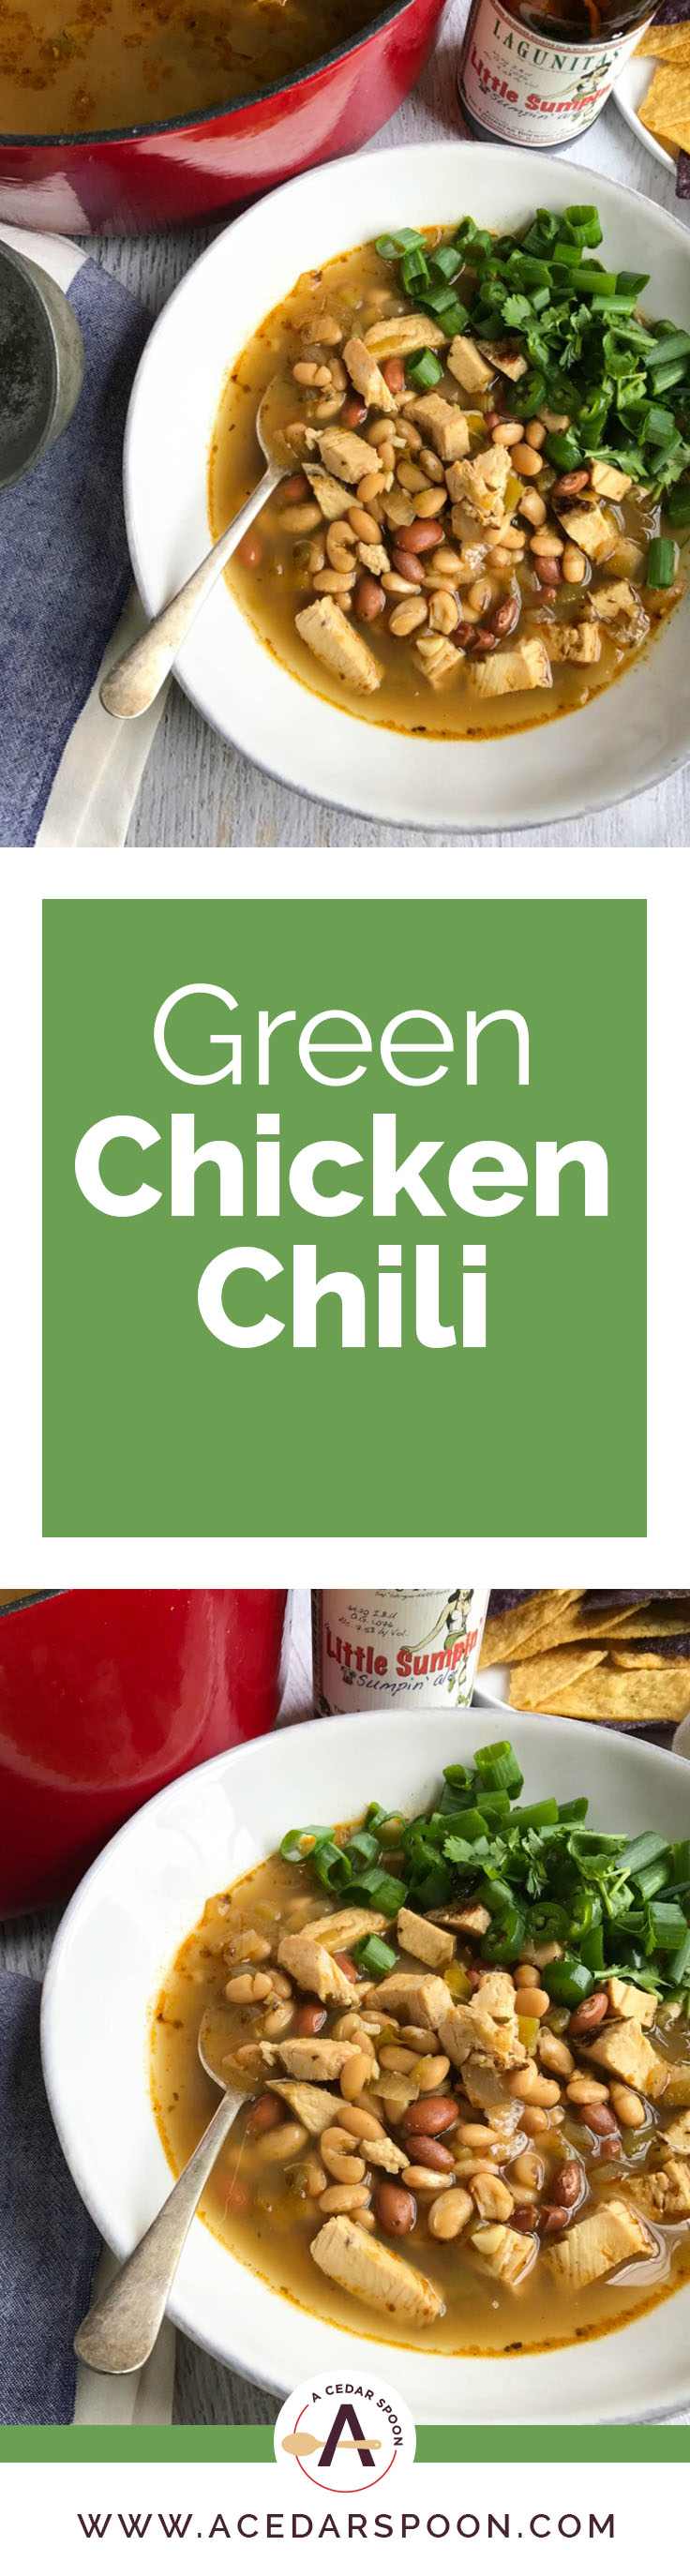 Green Chicken Chili a nice chili to make in the warmer months. It is a bit lighter than traditional chili, yet packed with protein to keep your energy up on those busy days. This chili uses chicken, green chilies, pinto and white beans, chicken broth, spices and a can of beer to create a flavor packed bowl of soup.